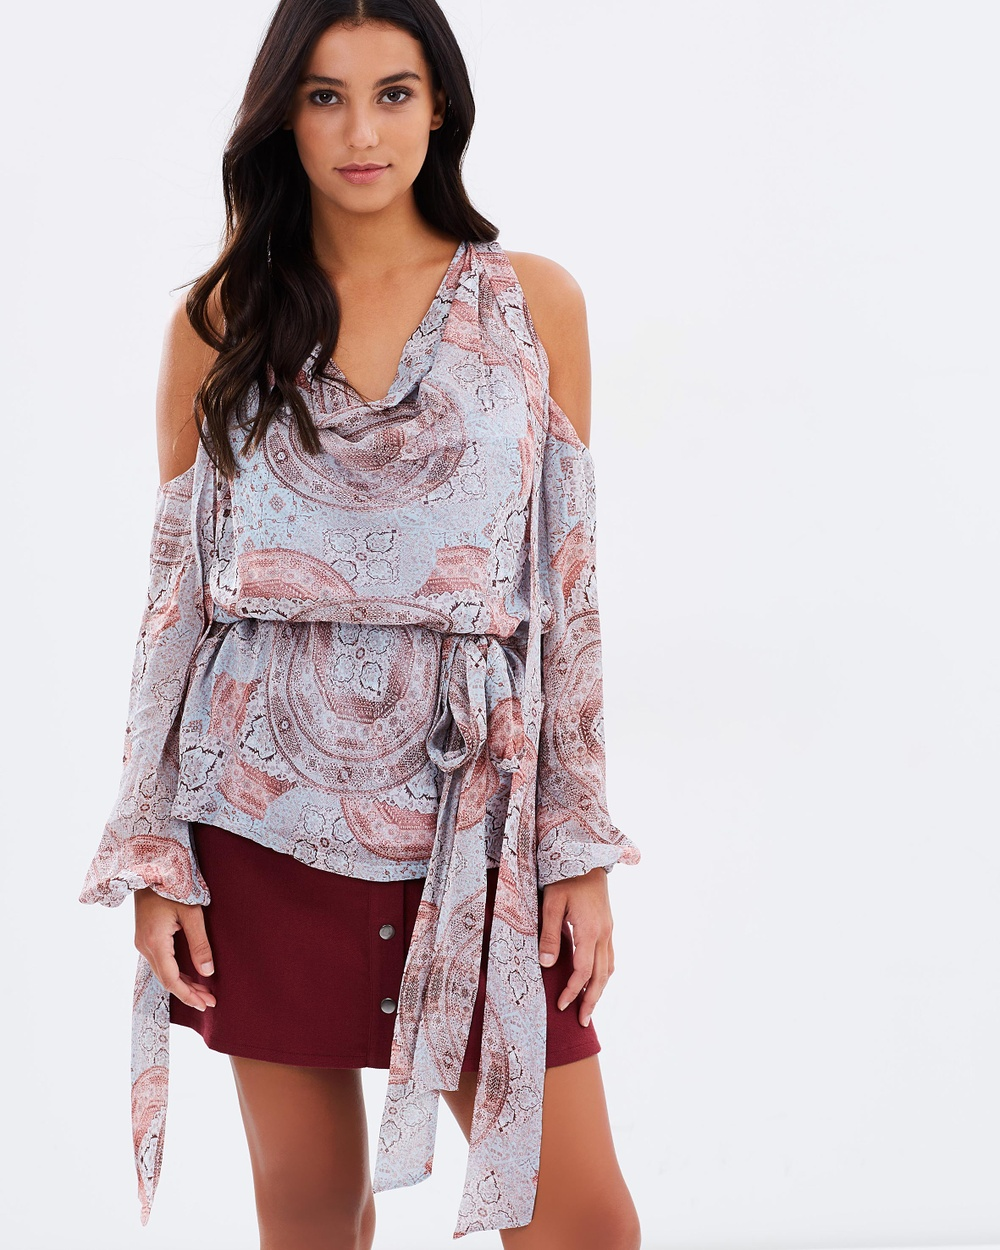 Ministry of Style Sundown Top Tops Sundown Print Sundown Top